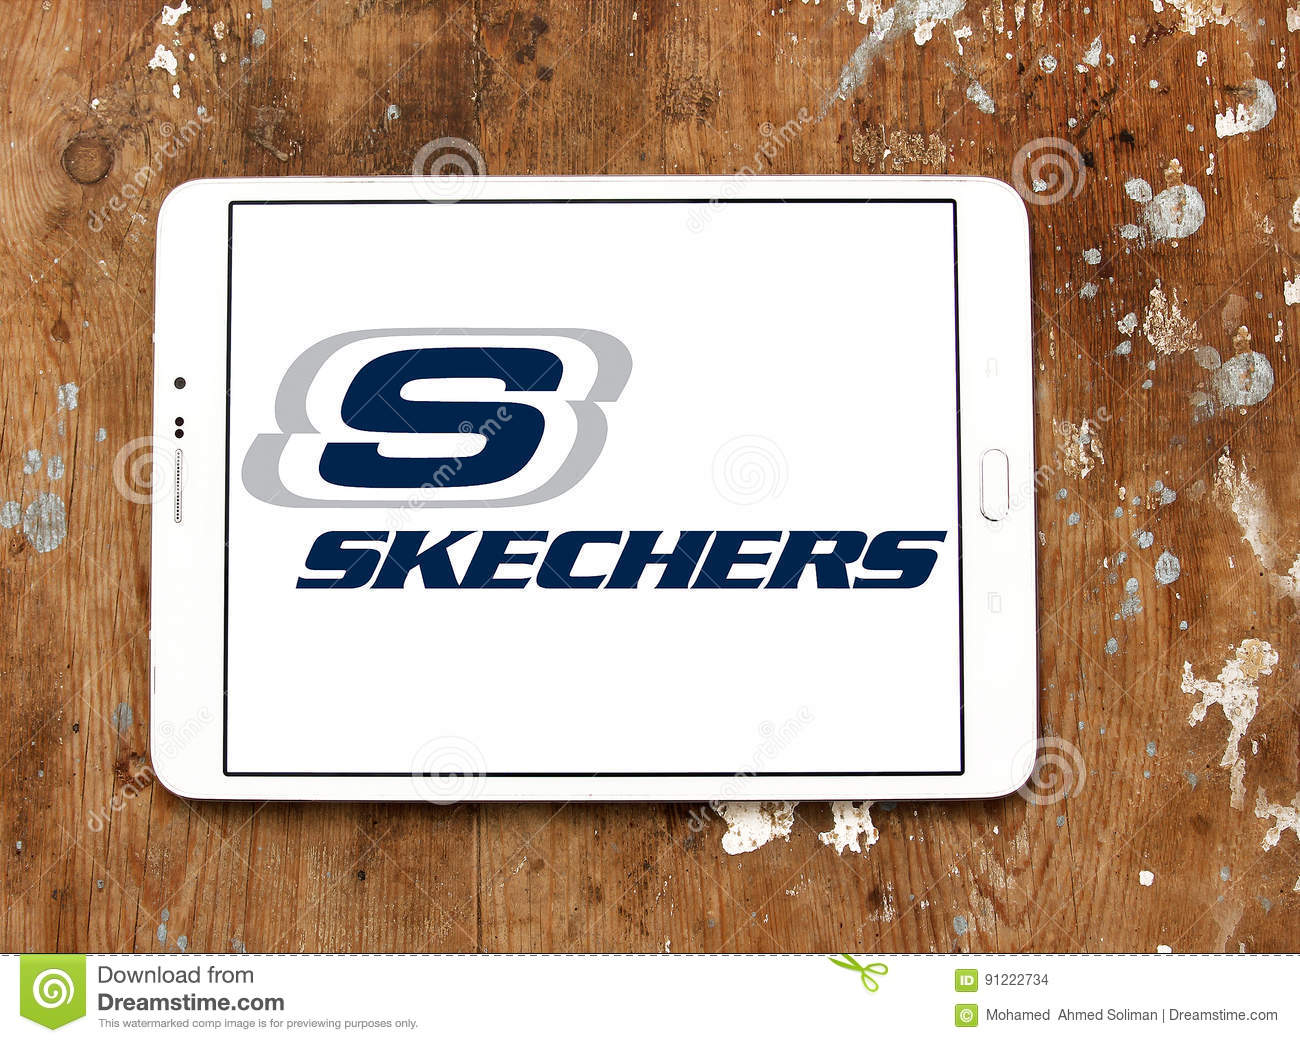 09592059dcbc Skechers shoes brand logo editorial stock image. Image of commercial ...